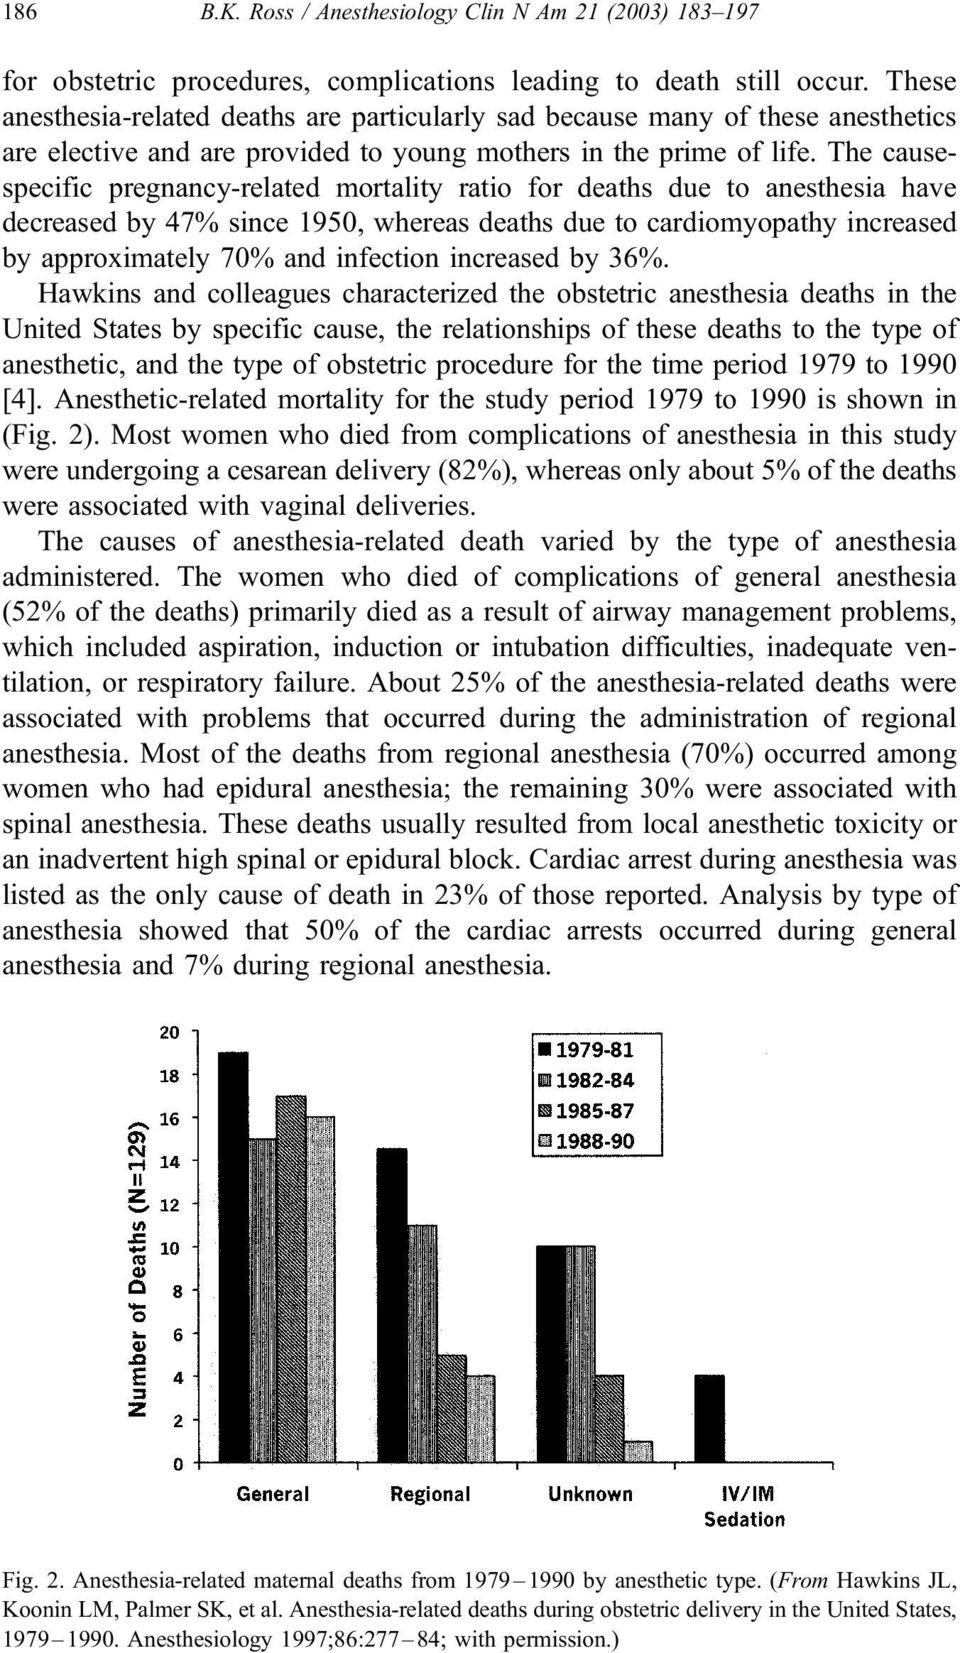 The causespecific pregnancy-related mortality ratio for deaths due to anesthesia have decreased by 47% since 1950, whereas deaths due to cardiomyopathy increased by approximately 70% and infection